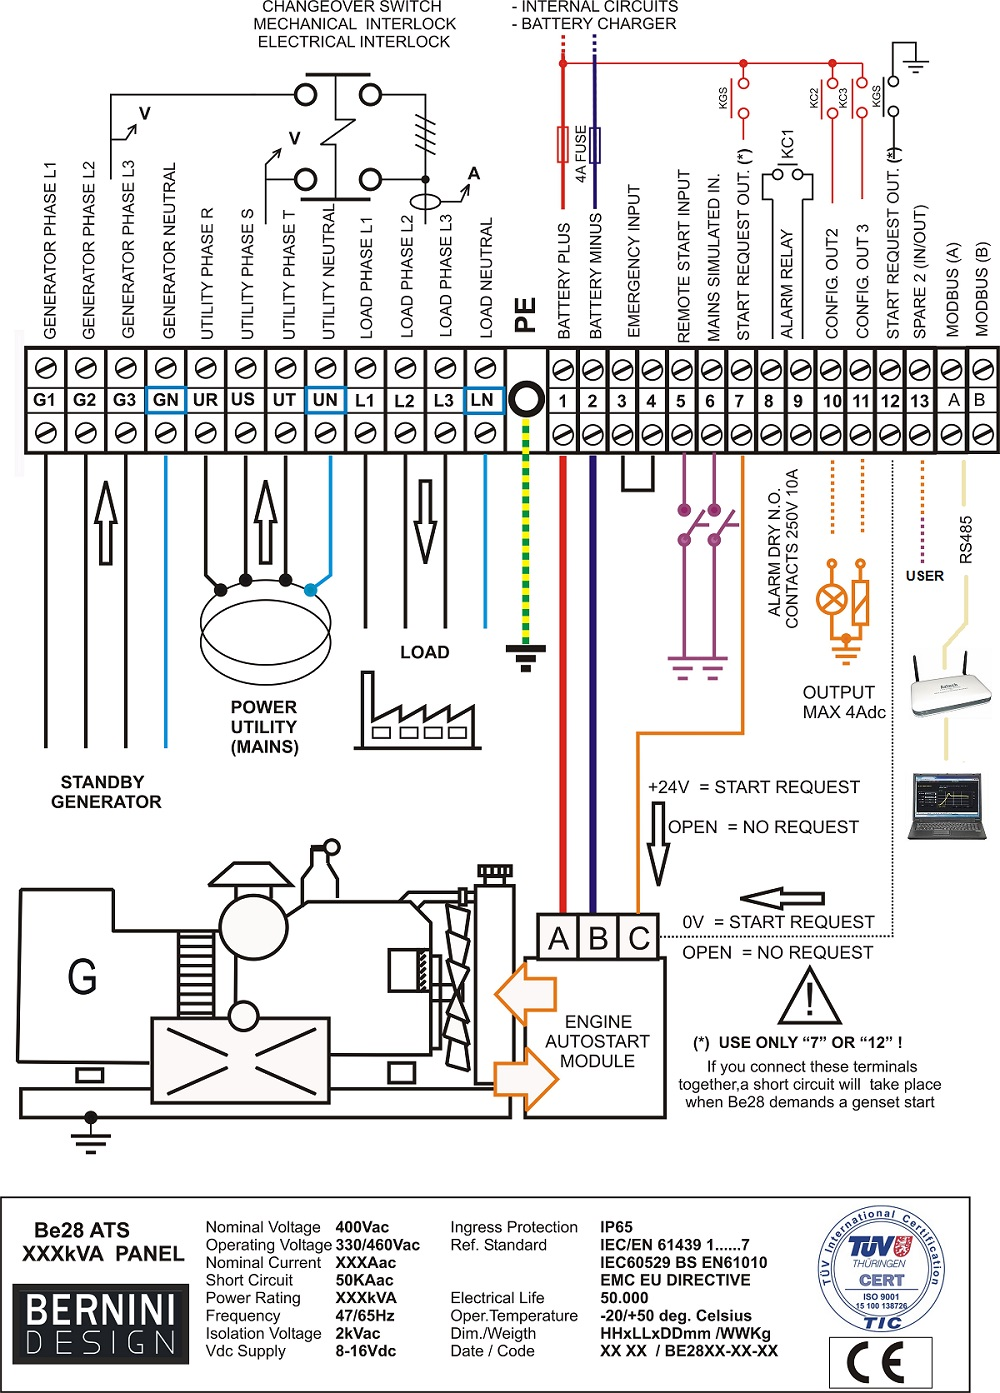 Automatic Transfer Switch Typical Wiring Diagram